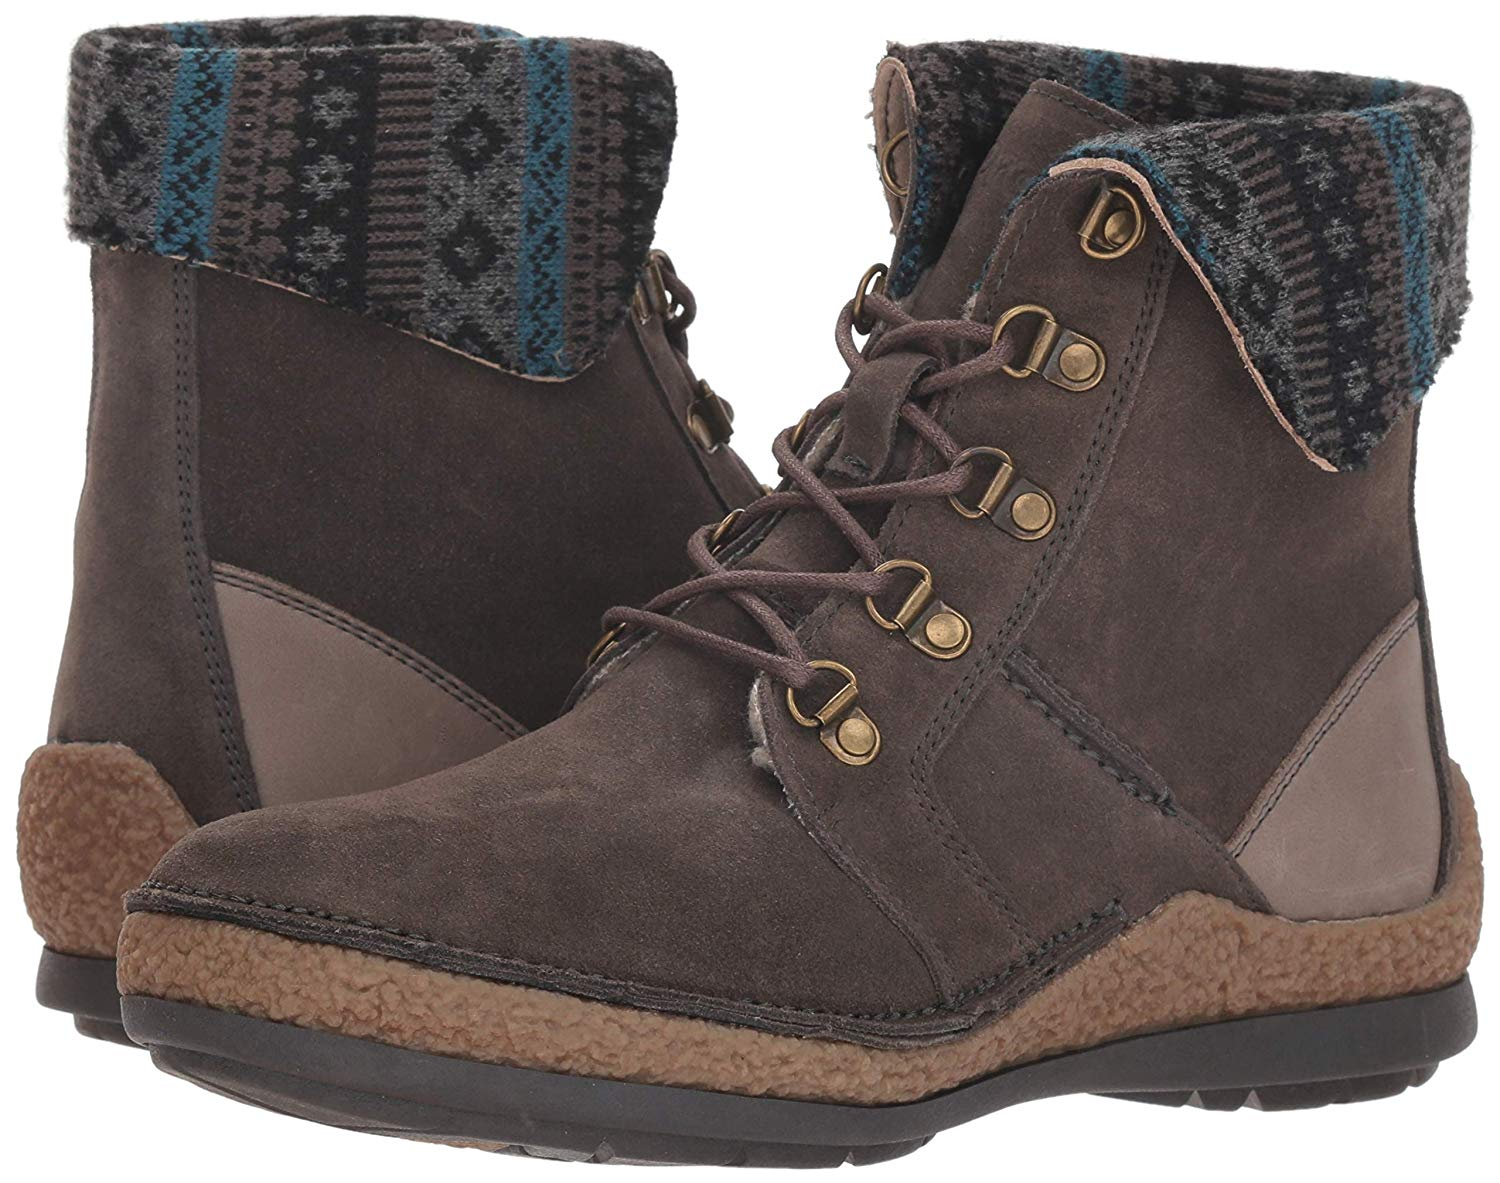 a789f2e3fdc Details about Propét Womens Dayna Leather Closed Toe Mid-Calf Cold Weather  Boots